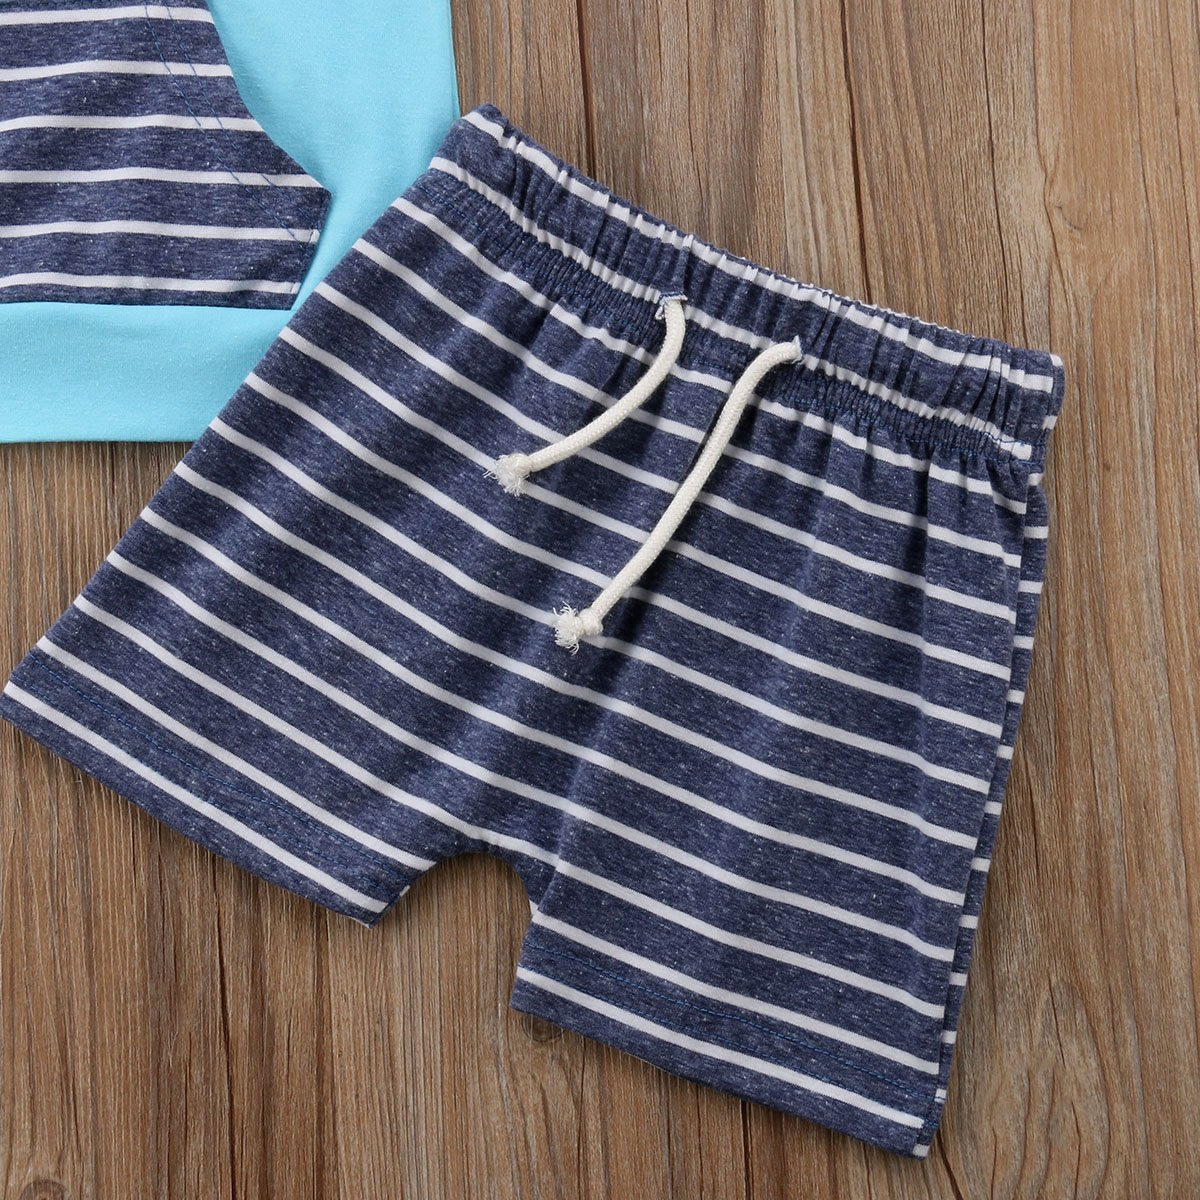 Newborn Baby Outfits Clothes Stripes Hoodie Sweatshirts Tops Short Pants Outfits Headband Baby Boys Girls Clothing Set